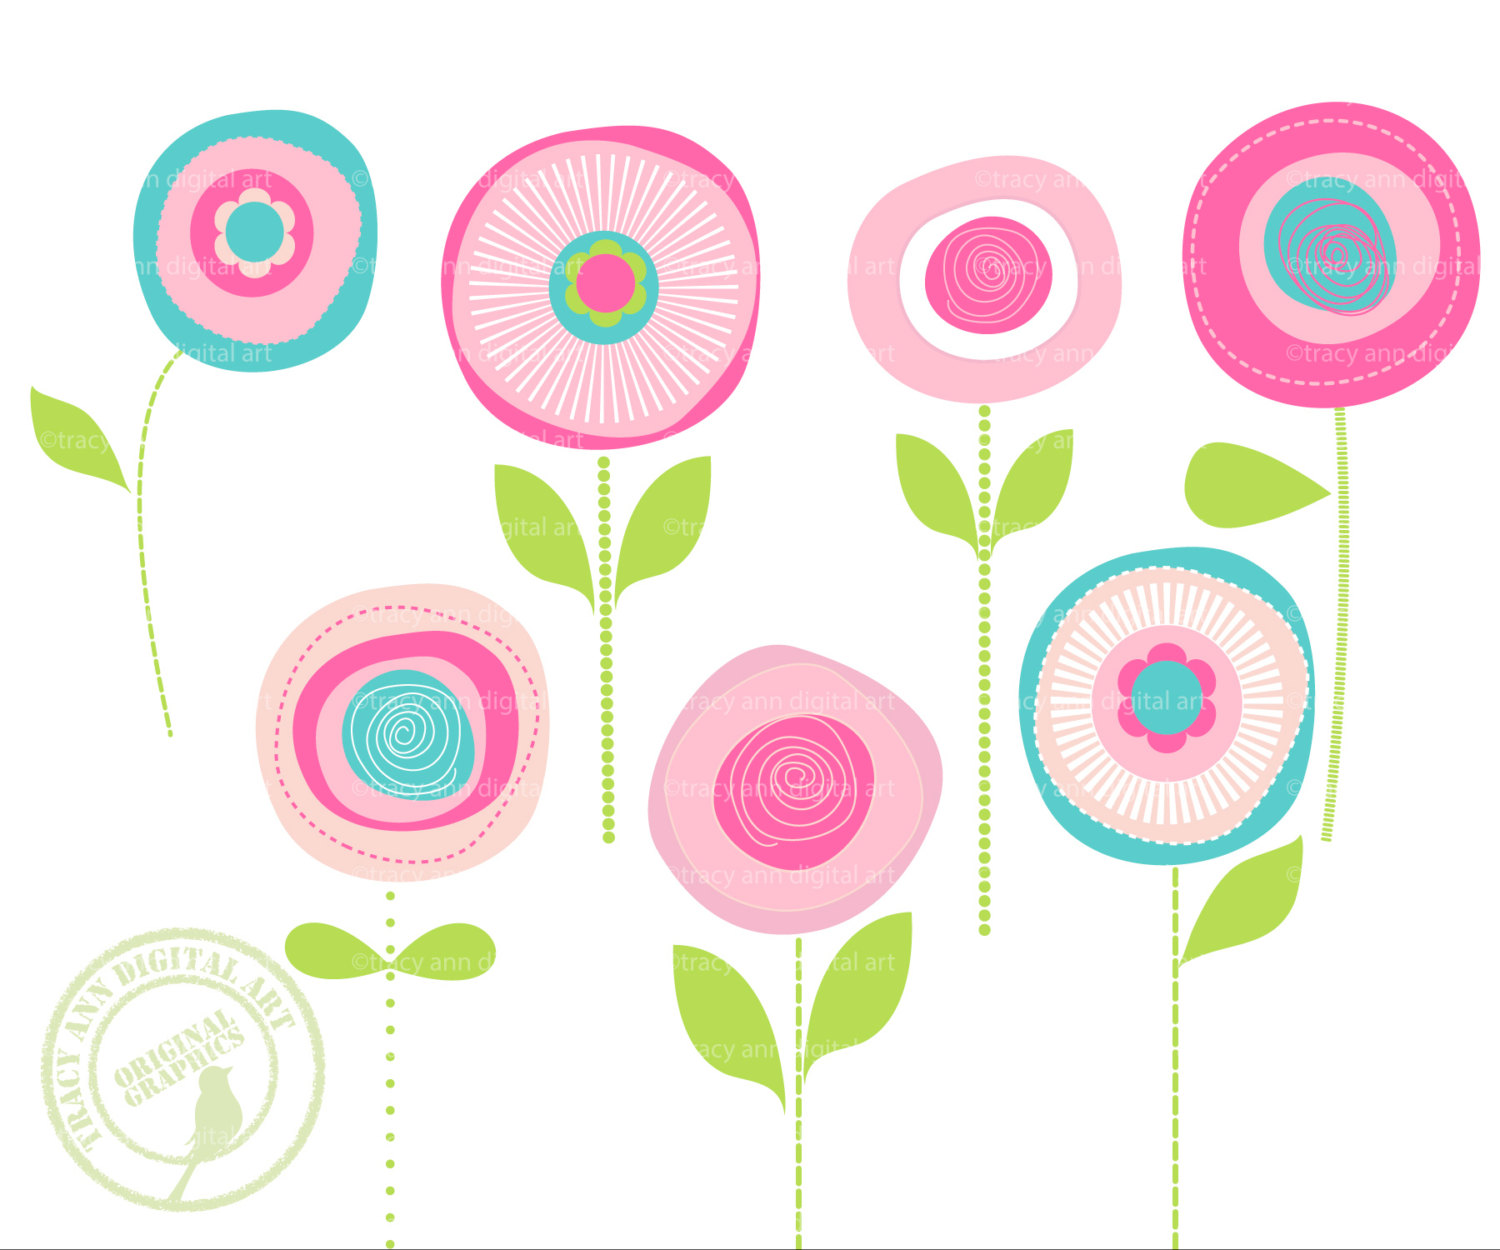 Modern clipart flowers freeuse library 38+ Flowers Clip Art Free | ClipartLook freeuse library